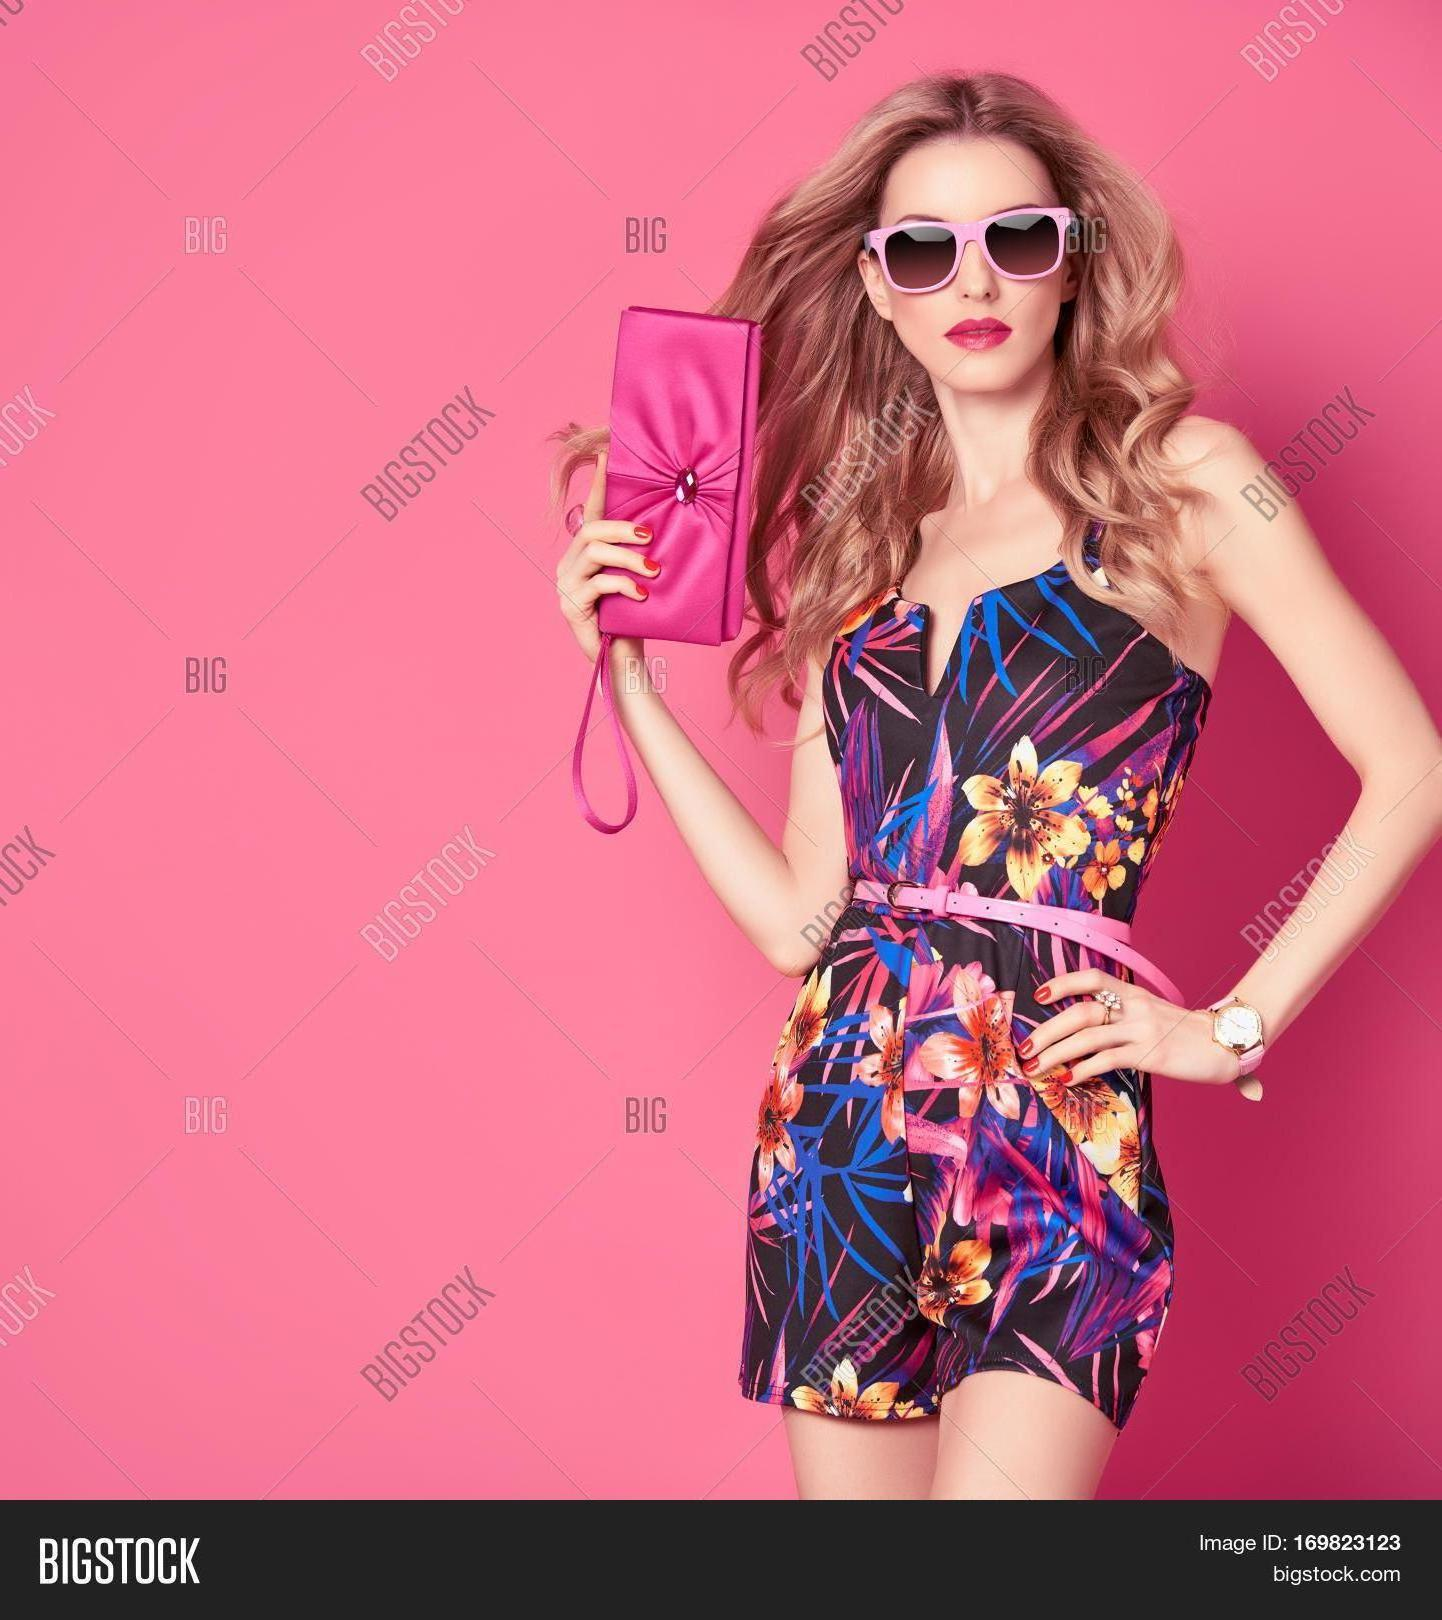 5009496bc8 Romper Multicolor Romper Floral Flowers Topical Shorts Summer Spring  Vacation Leaves Palm Vacation Outfits Palm Tree